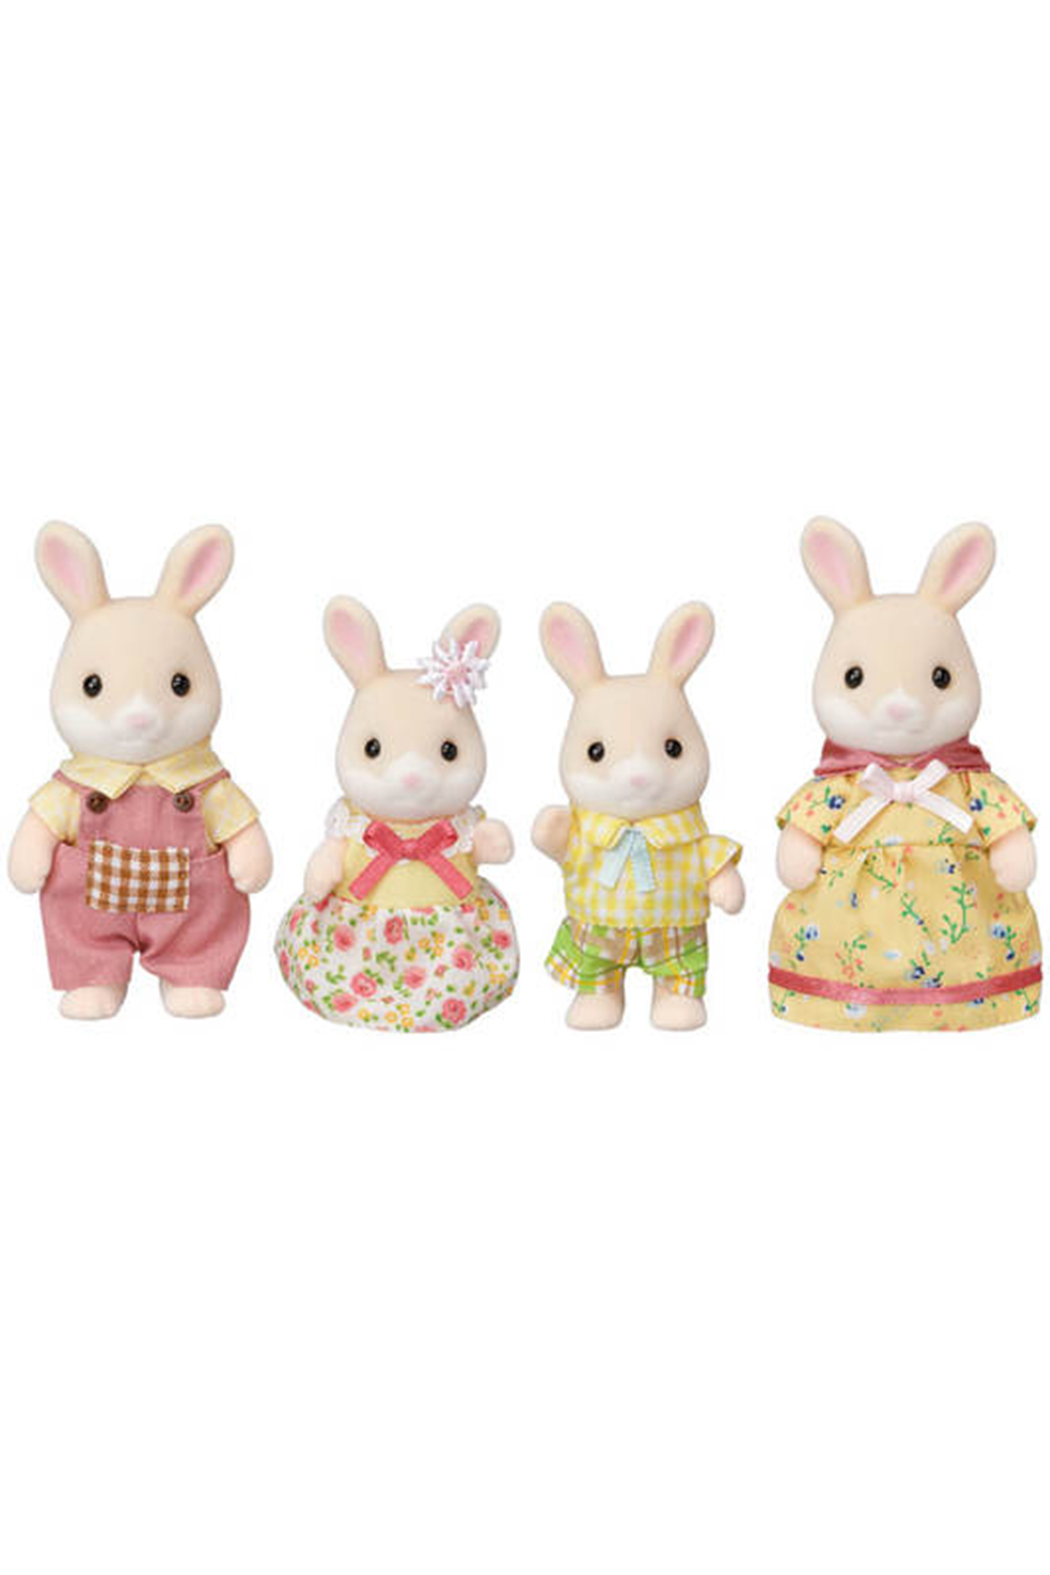 Calico Critters Marguerite Rabbit Family - Main Image